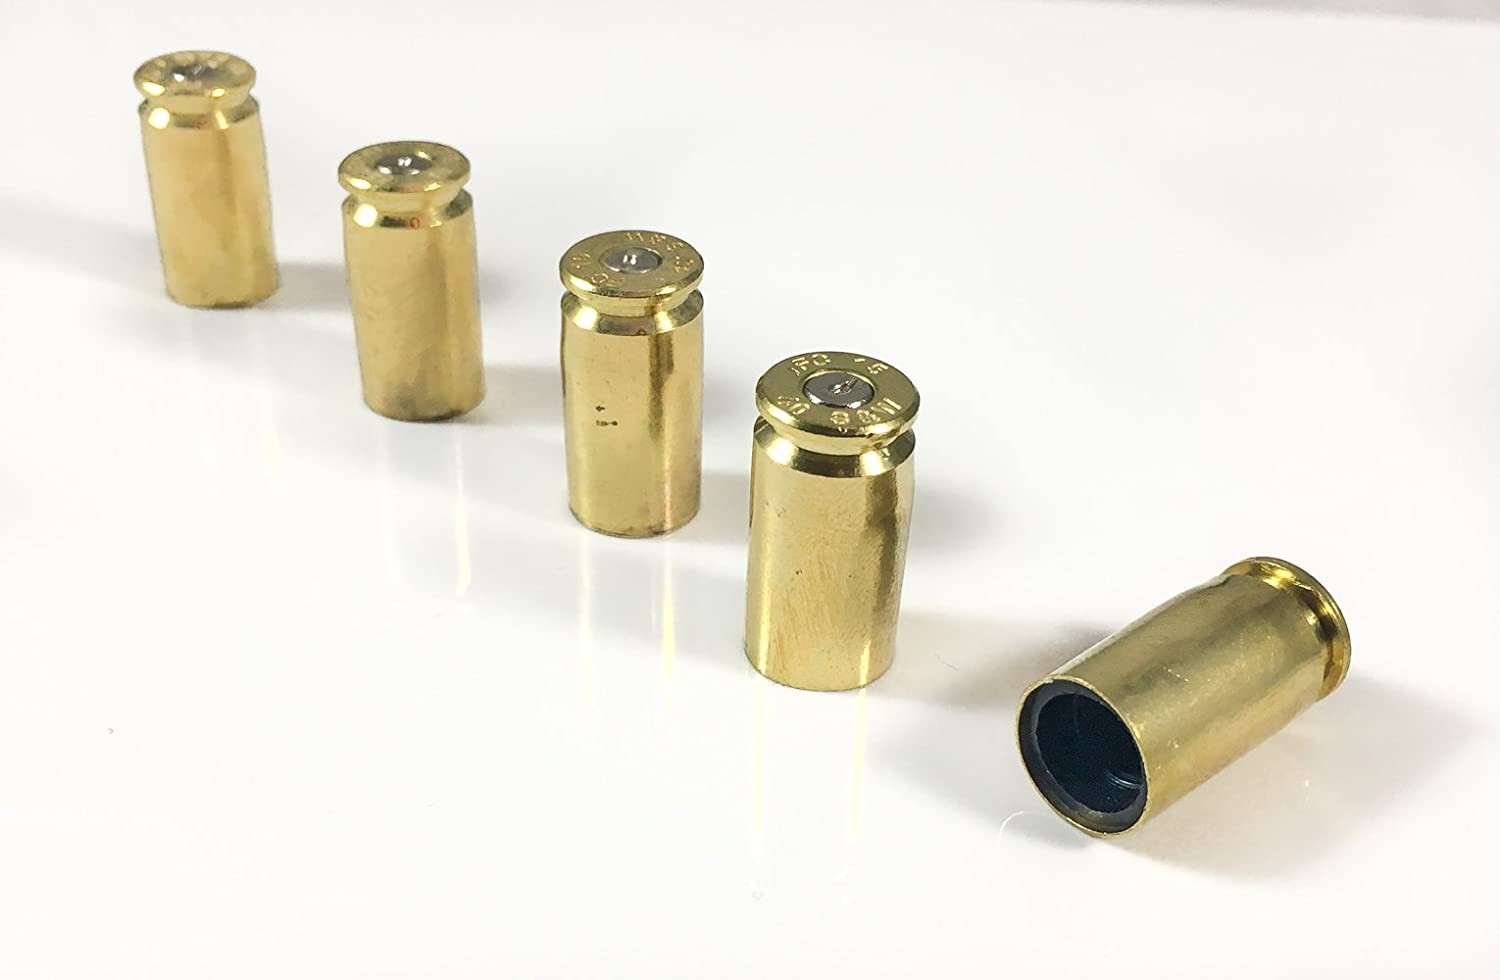 Bullet Tire Caps for Jeeps  Set of 5 Recycled Brass .40 Caliber OnceFired Bullet Casing  Car, Bike, Motorcycle, Truck, ATV Replacement Tire Valve Caps. Groomsmen Gift. Gift for Military and Police. by HollowPoint Gear